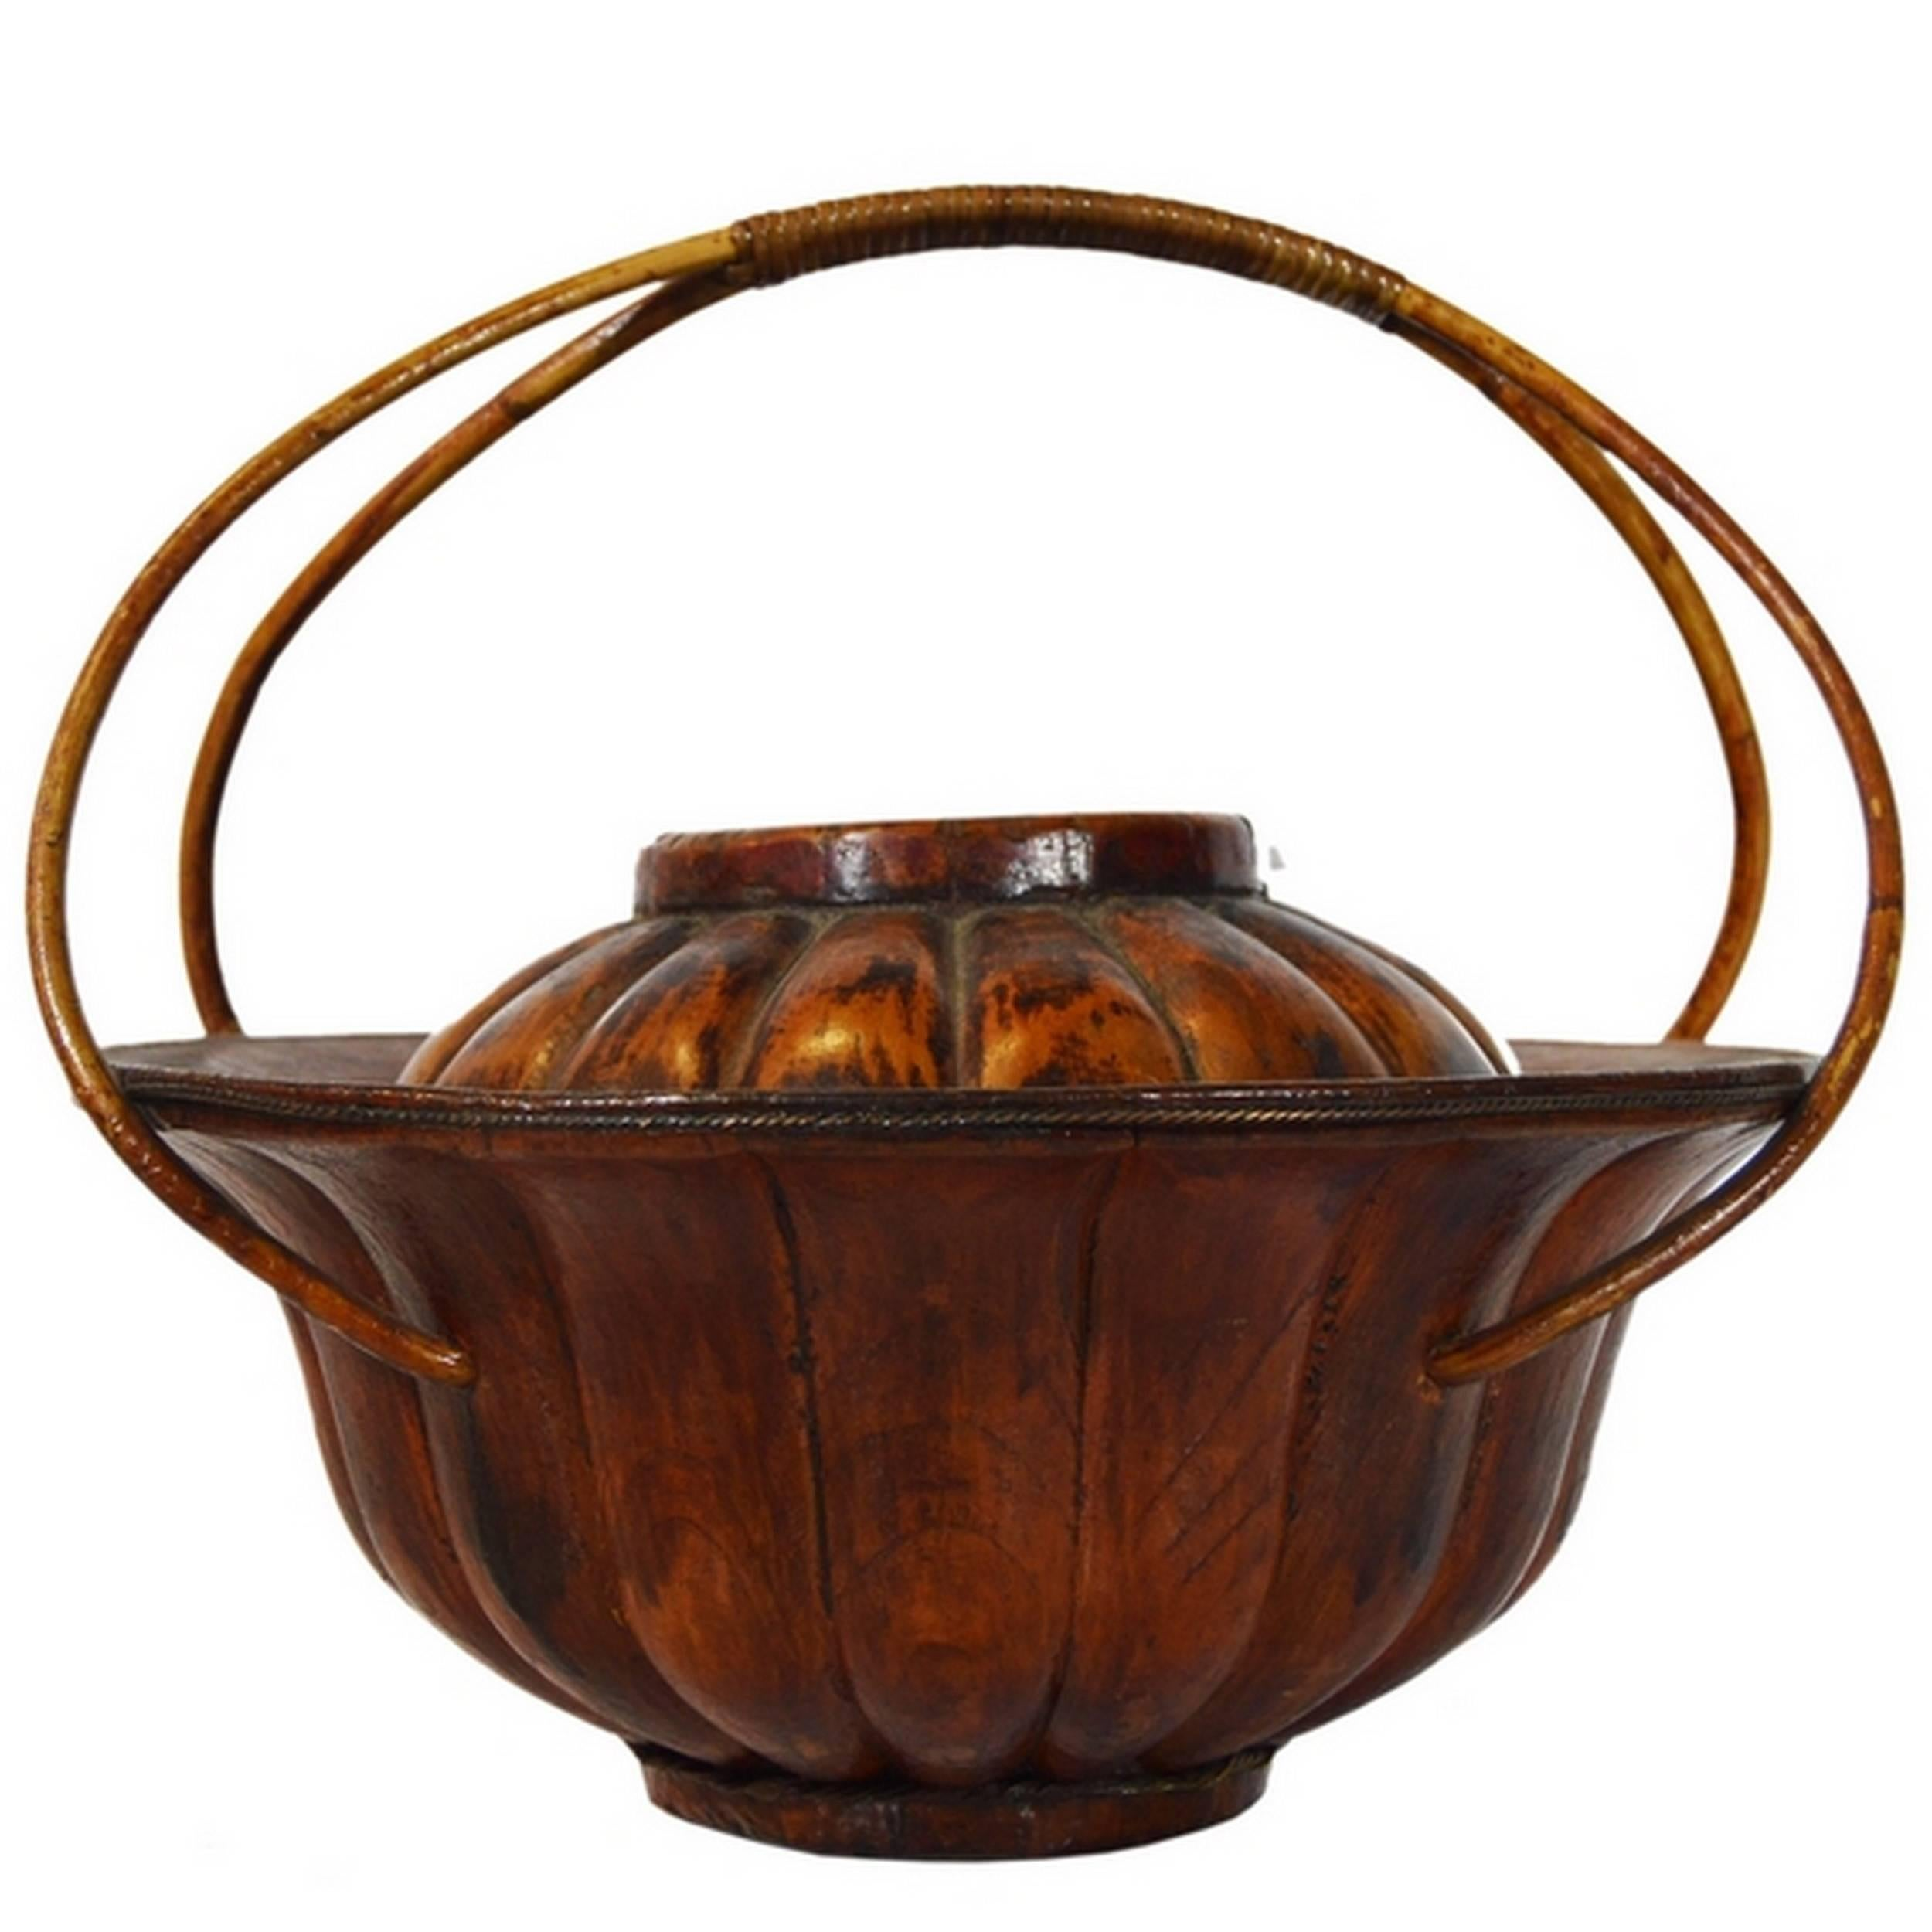 Chinese Varnished Bamboo Hat Basket from the 19th Century Painted with Flowers